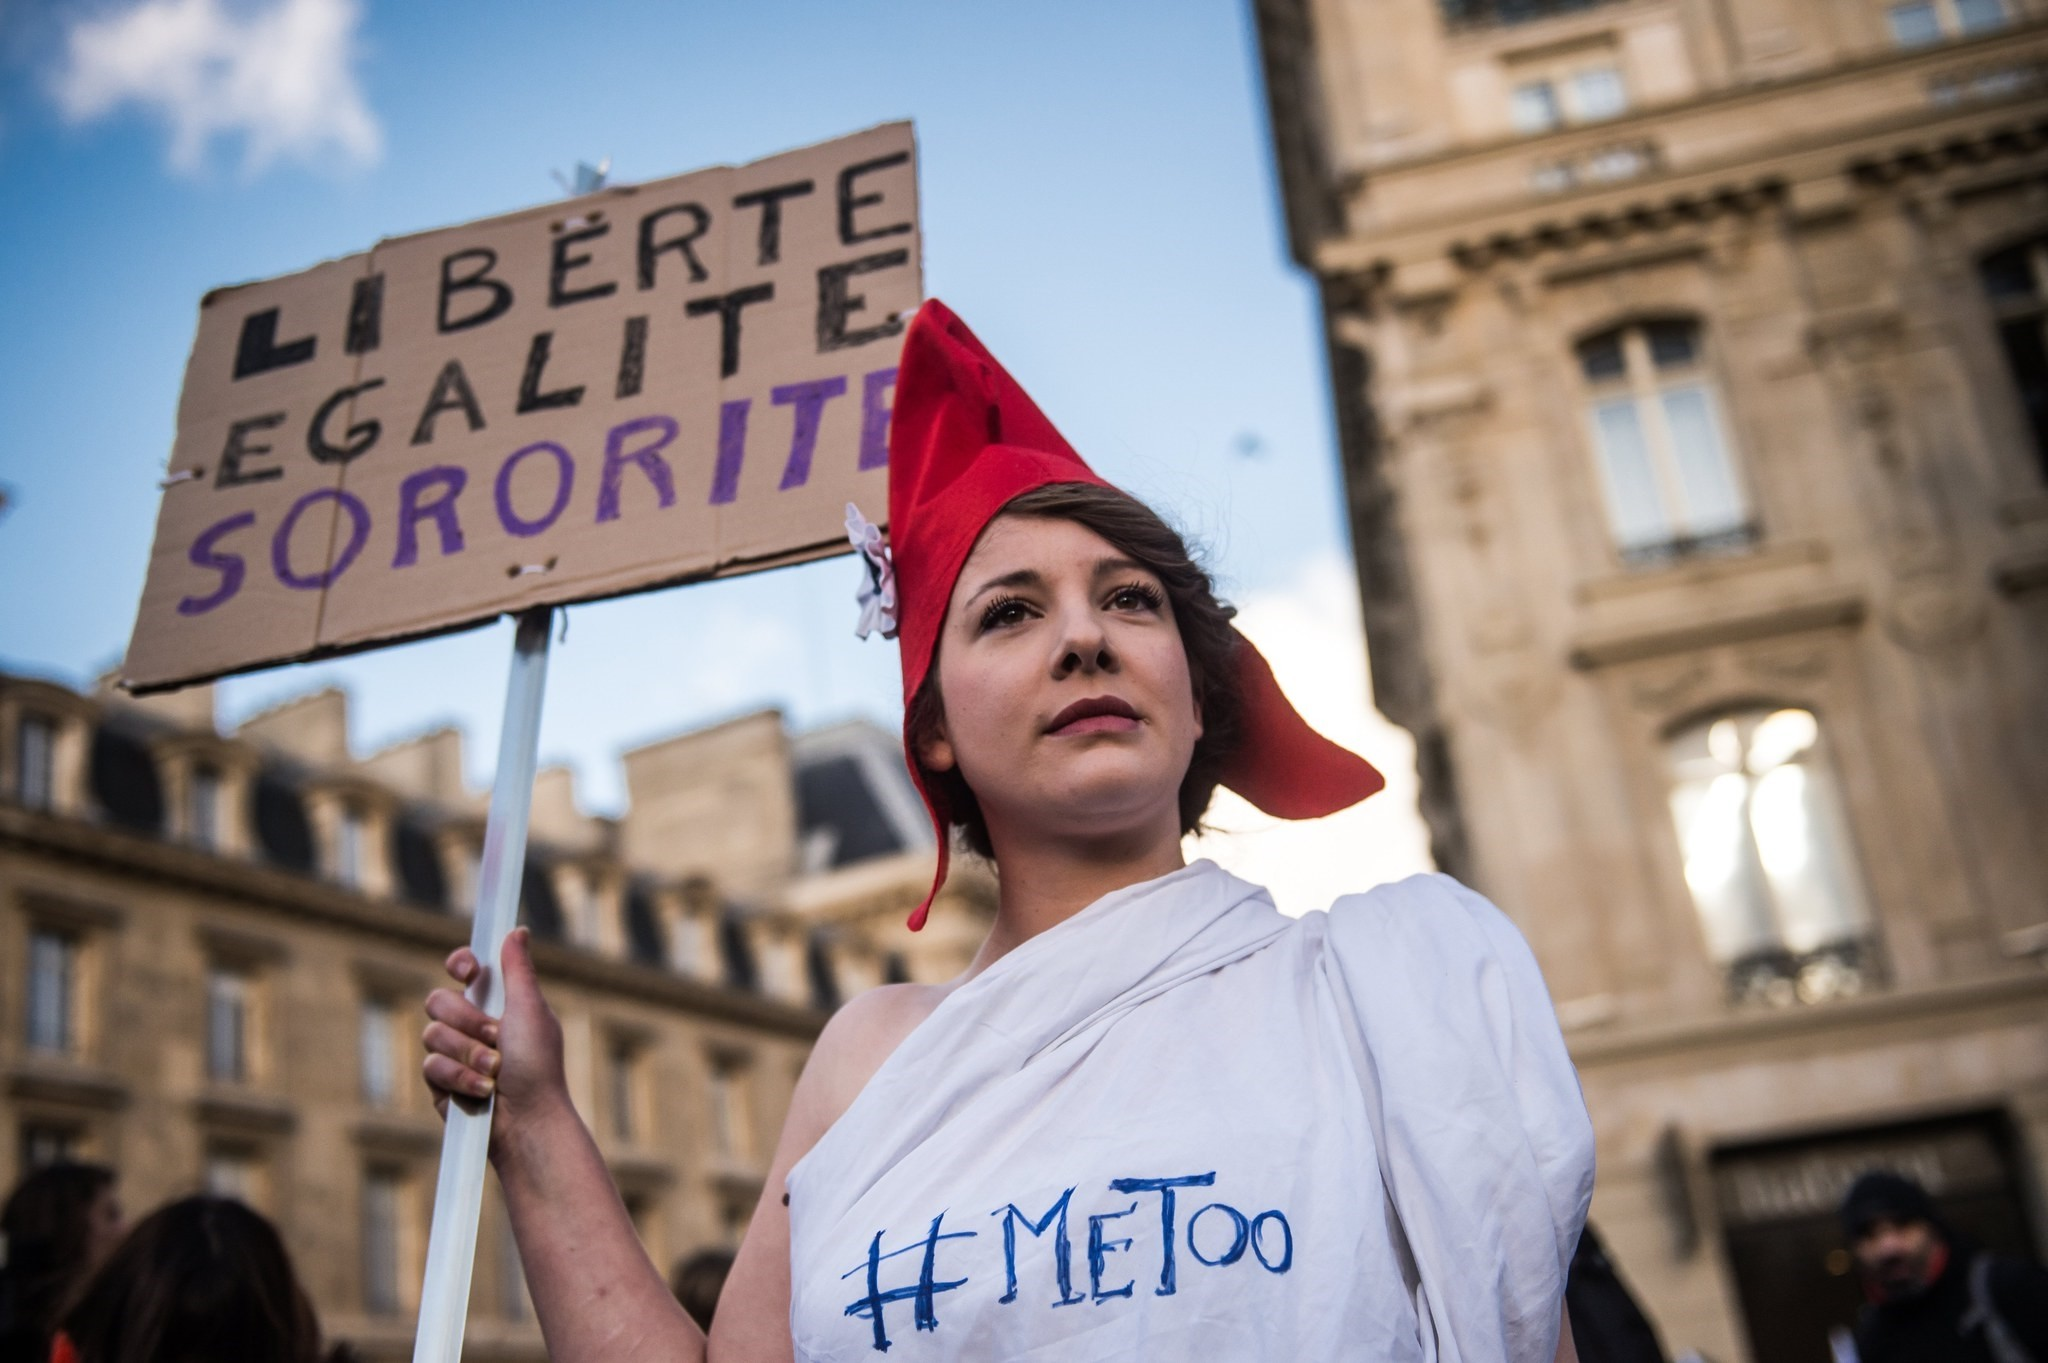 An activist with the #MeToo hastag holds a poster reading 'Liberty Equality Sisterhood' during the International Day for the Elimination of Violence Against Women march in Paris, Nov. 25, 2017. (EPA Photo)